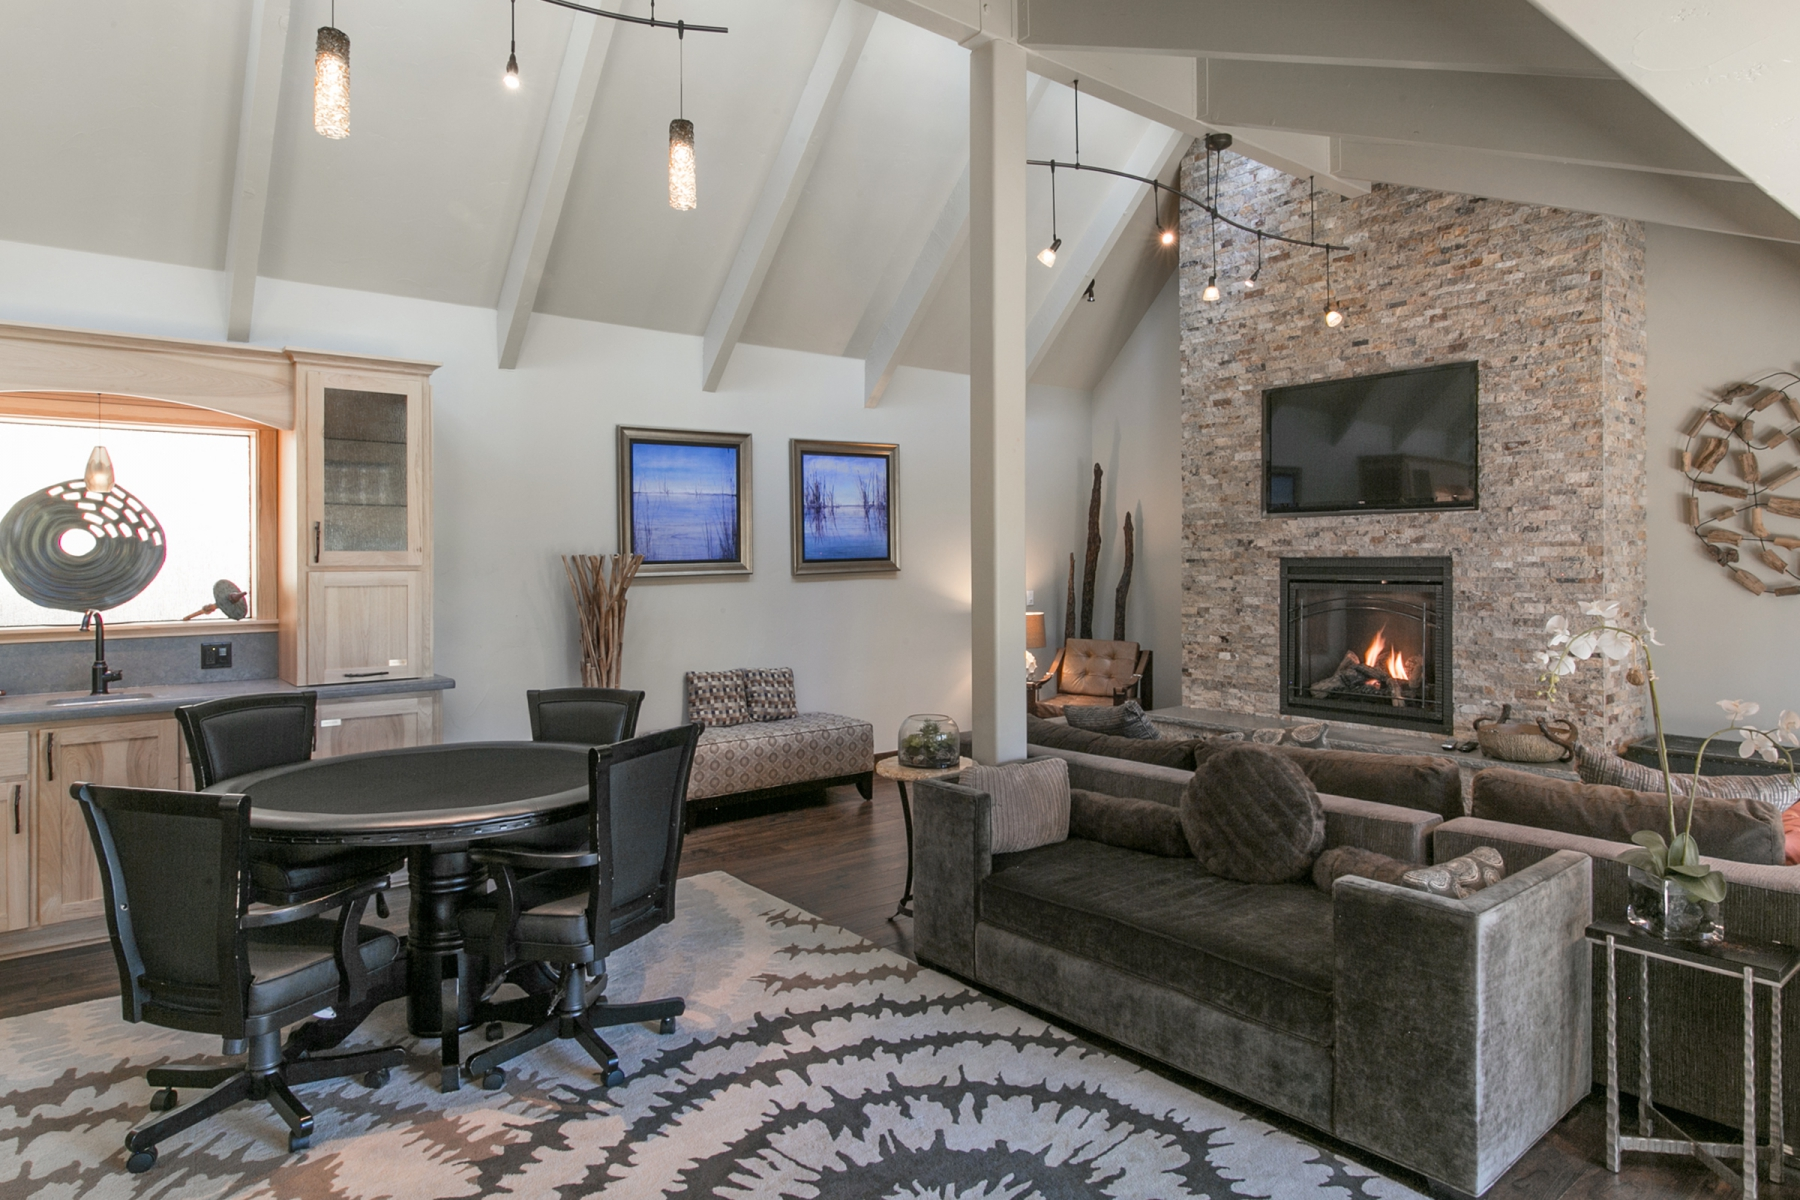 Additional photo for property listing at 420 Cyrnos Way  Tahoe City, California 96145 United States